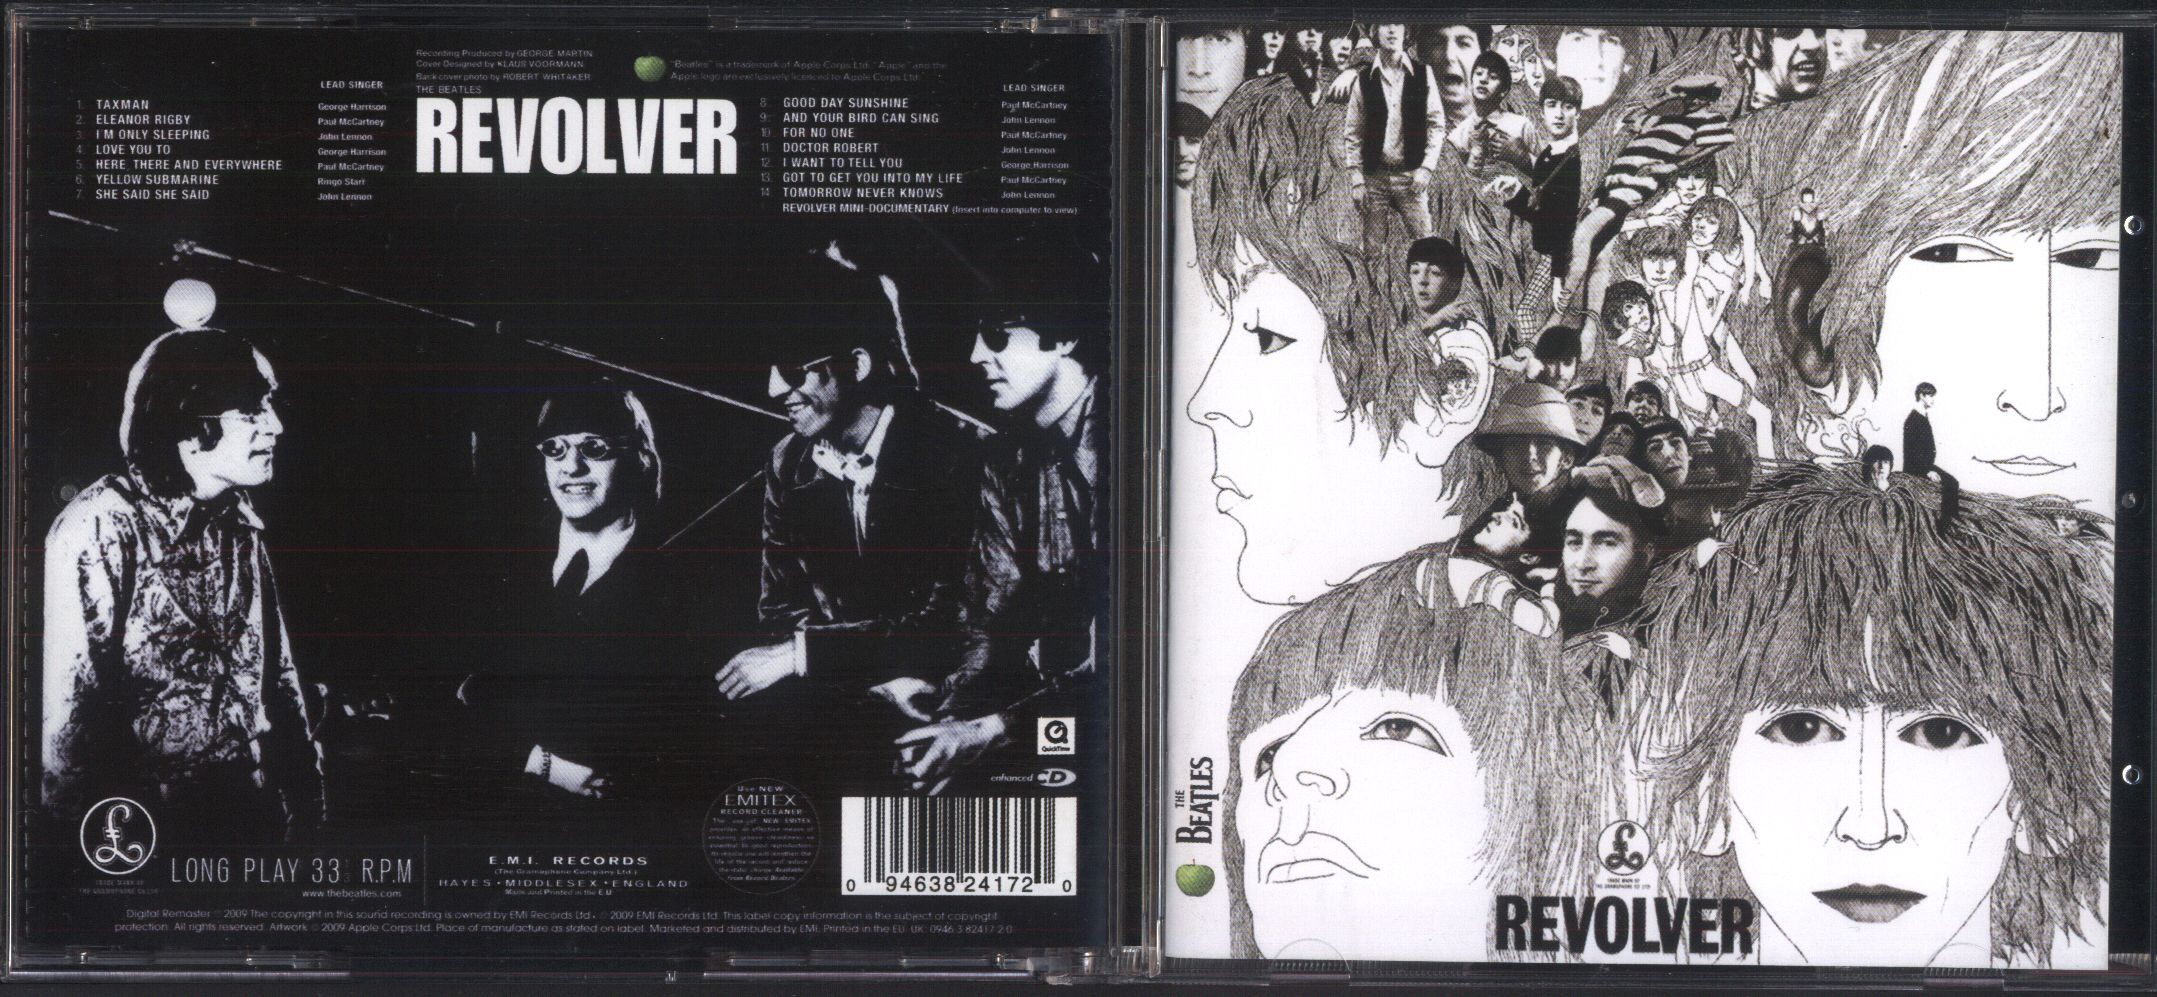 BEATLES - Revolver (2009 Remastered Edition, Jewel Case Edition, 24page Booklet)